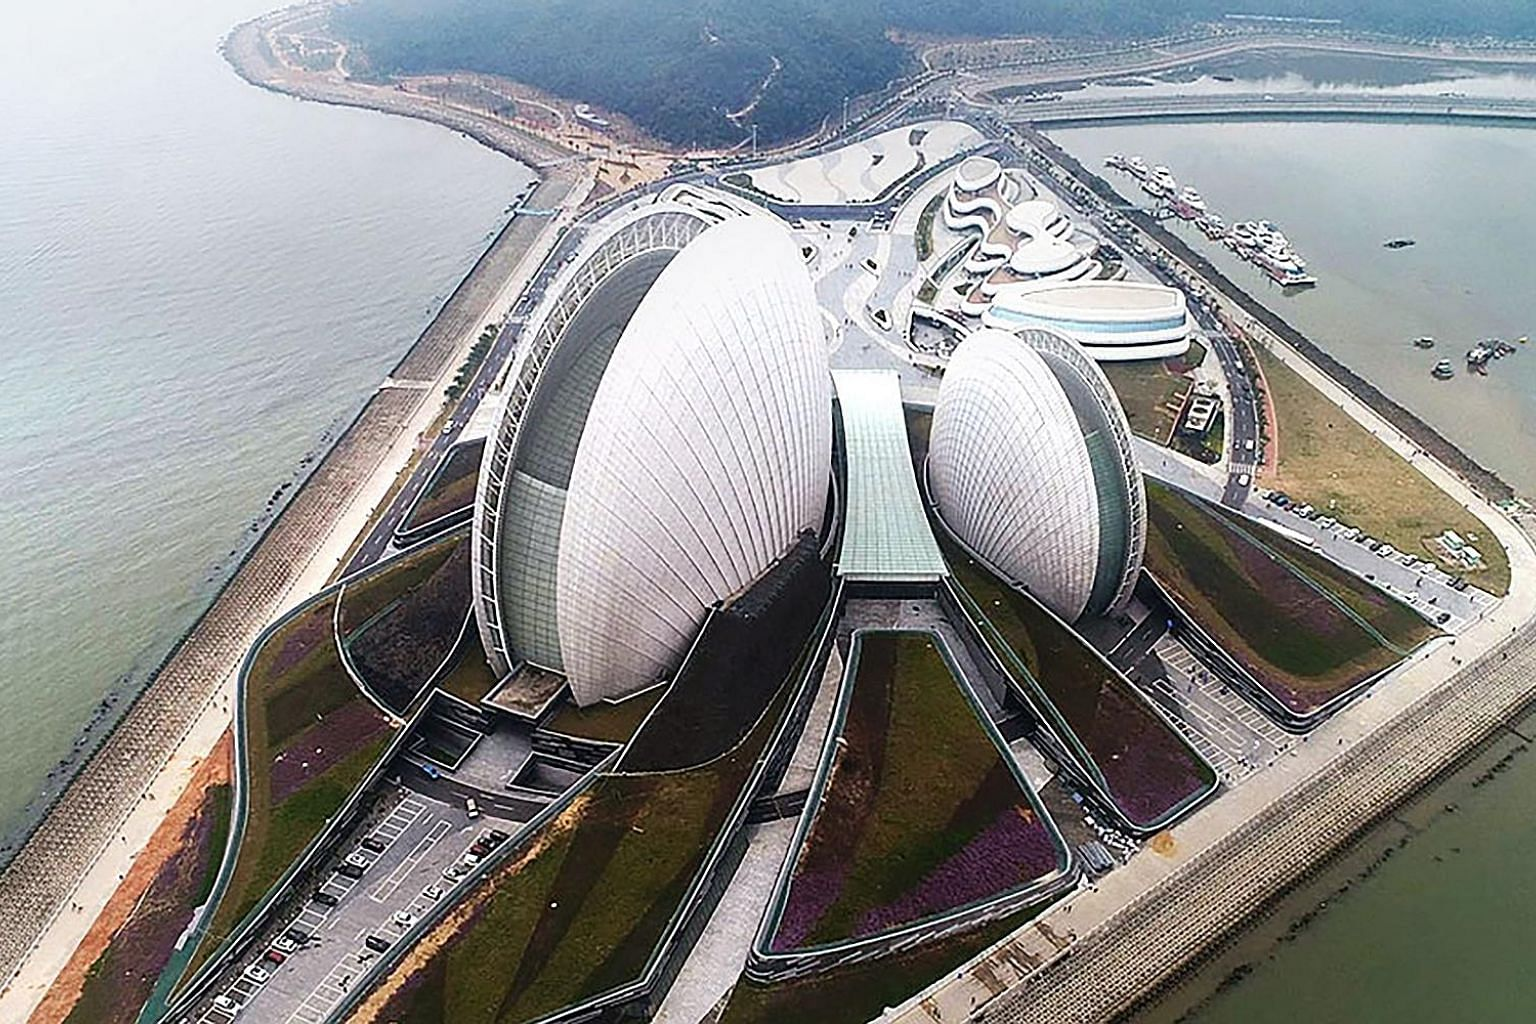 The Zhuhai Grand Theatre, a new landmark in Zhuhai, one of the 11 cities of the Pearl River Delta that will be part of the Greater Bay Area. Under the plan, Hong Kong would build on its status as an international financial, transportation and trade h